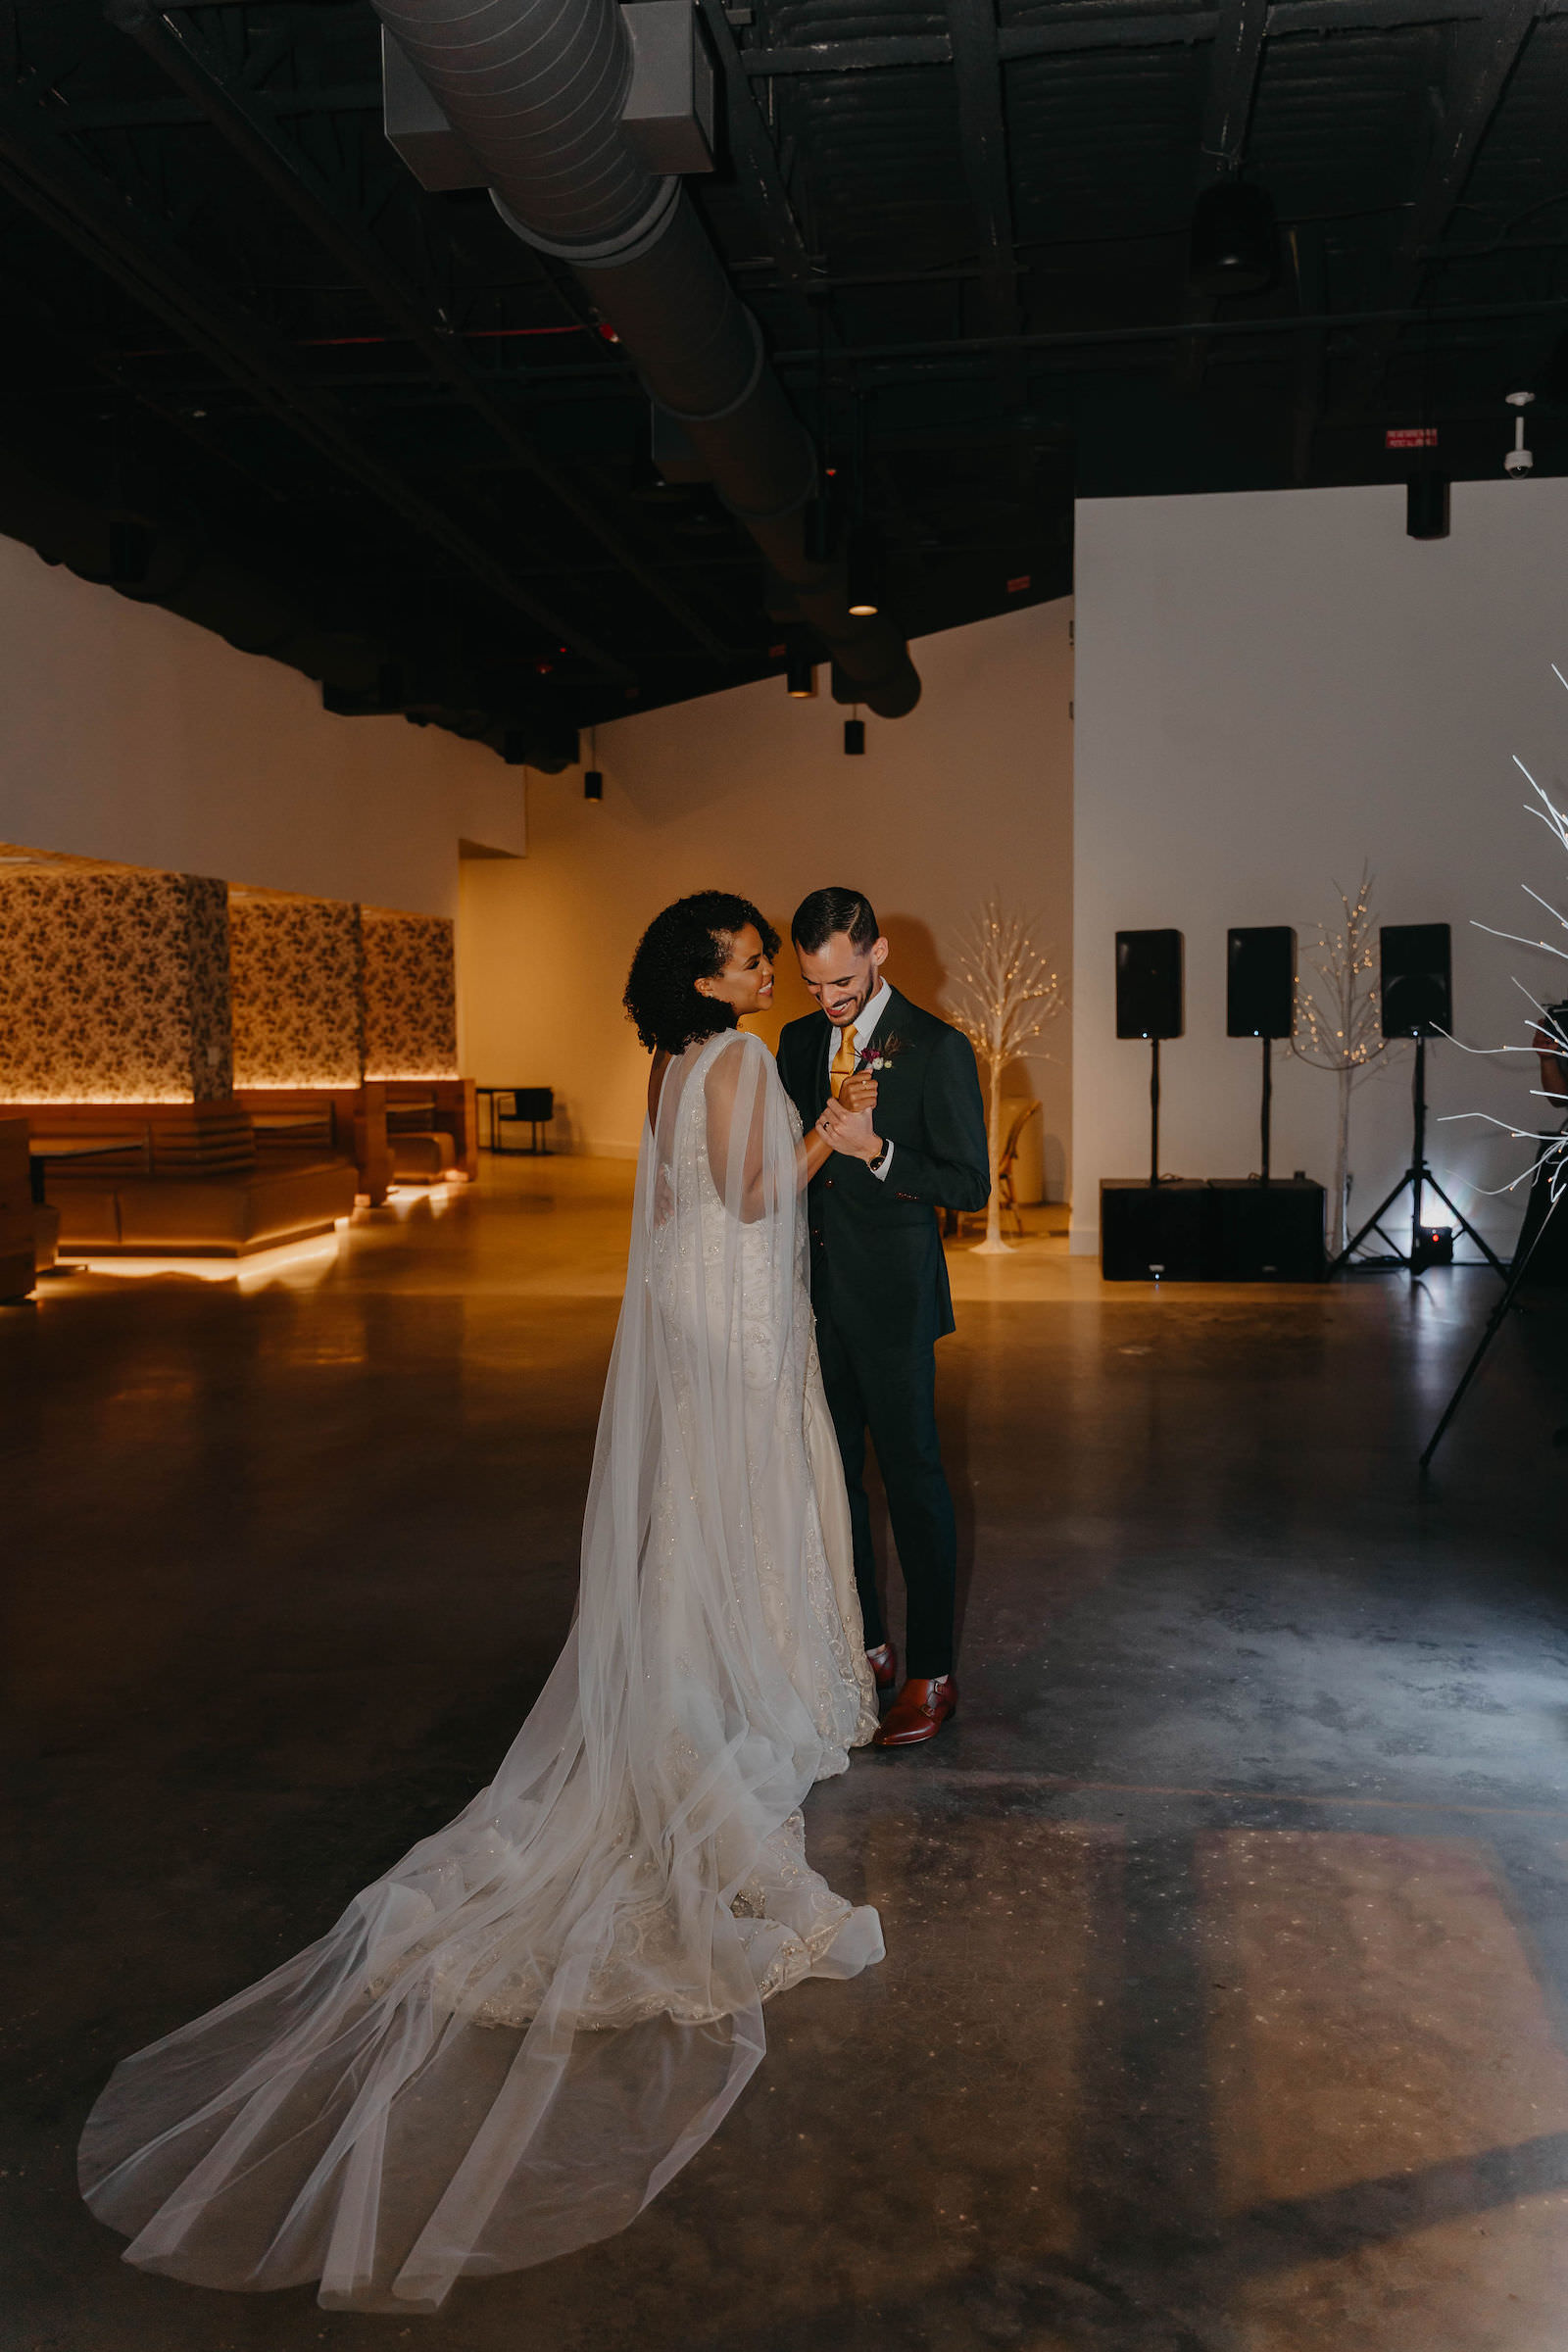 Indoor Bride and Groom First Dance in Tampa Wedding Venue Hyde House   Illusion Lace Embroidered Beaded V Neck Wedding Dress Bridal Gown with Sheer Tulle Cape Sleeves by Designer Amalia Carrara Bridal   Groom in Classic Black Tux Suit with Gold Tie